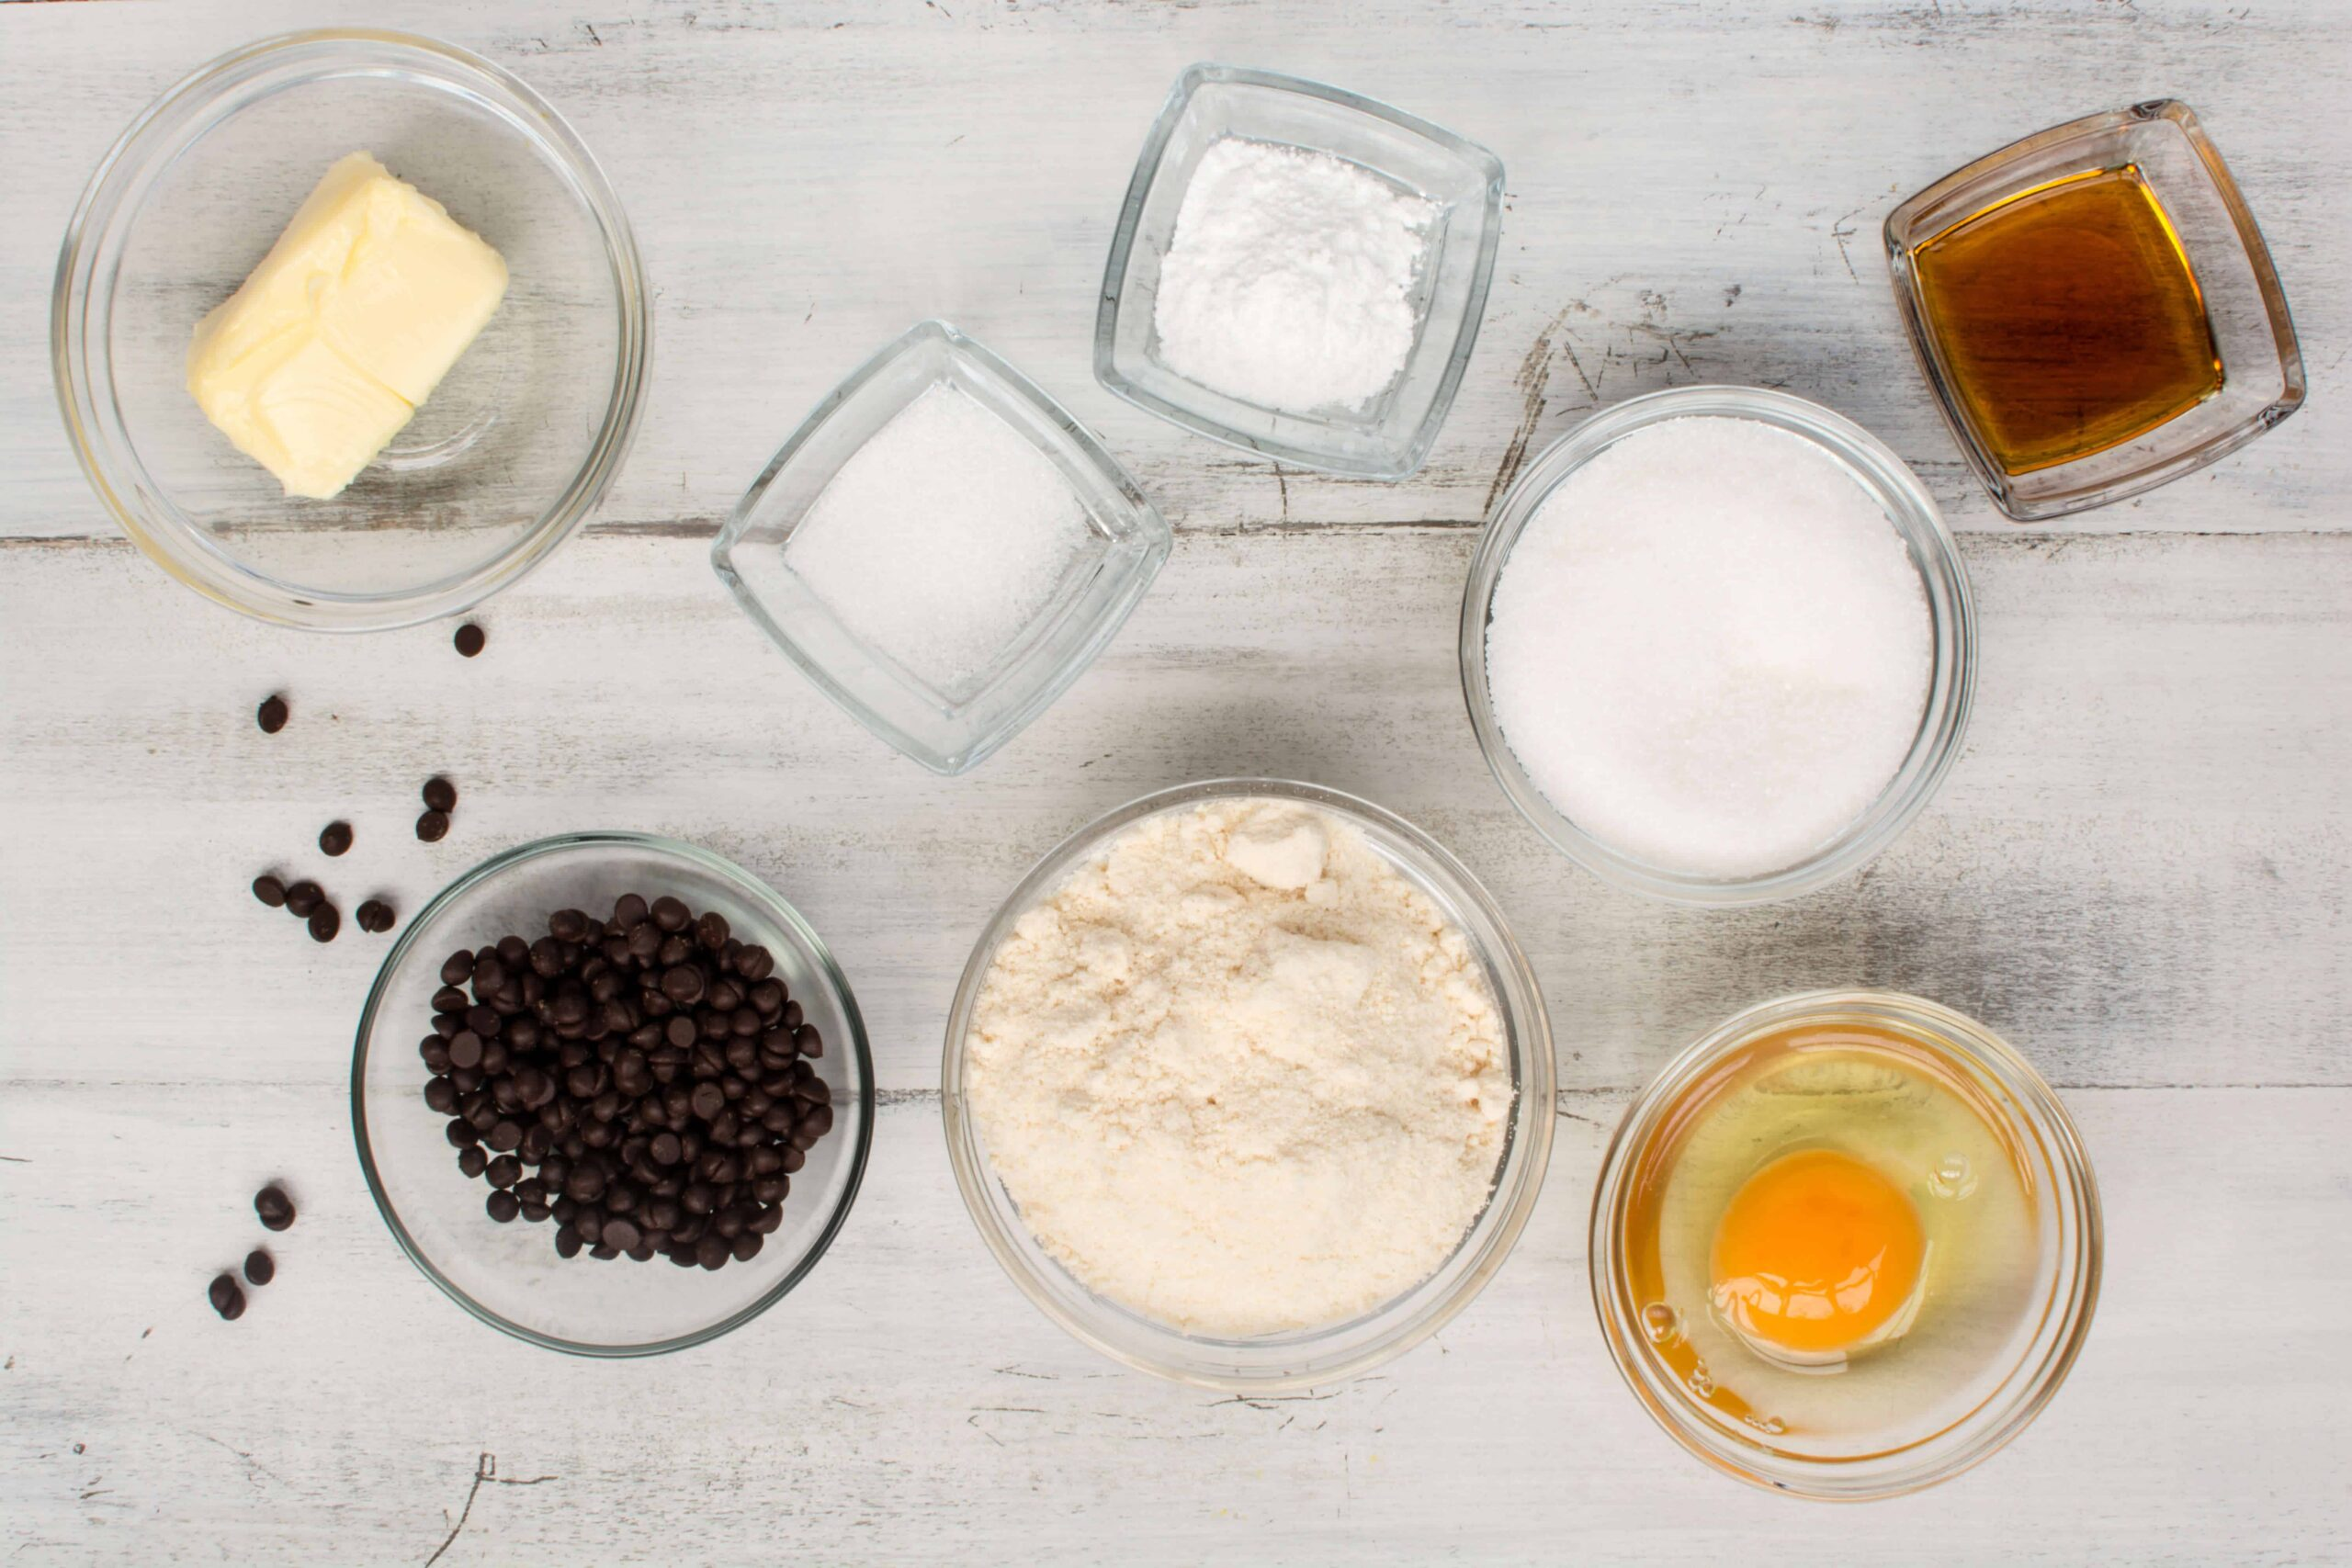 ingredients for making low carb chocolate chip cookies